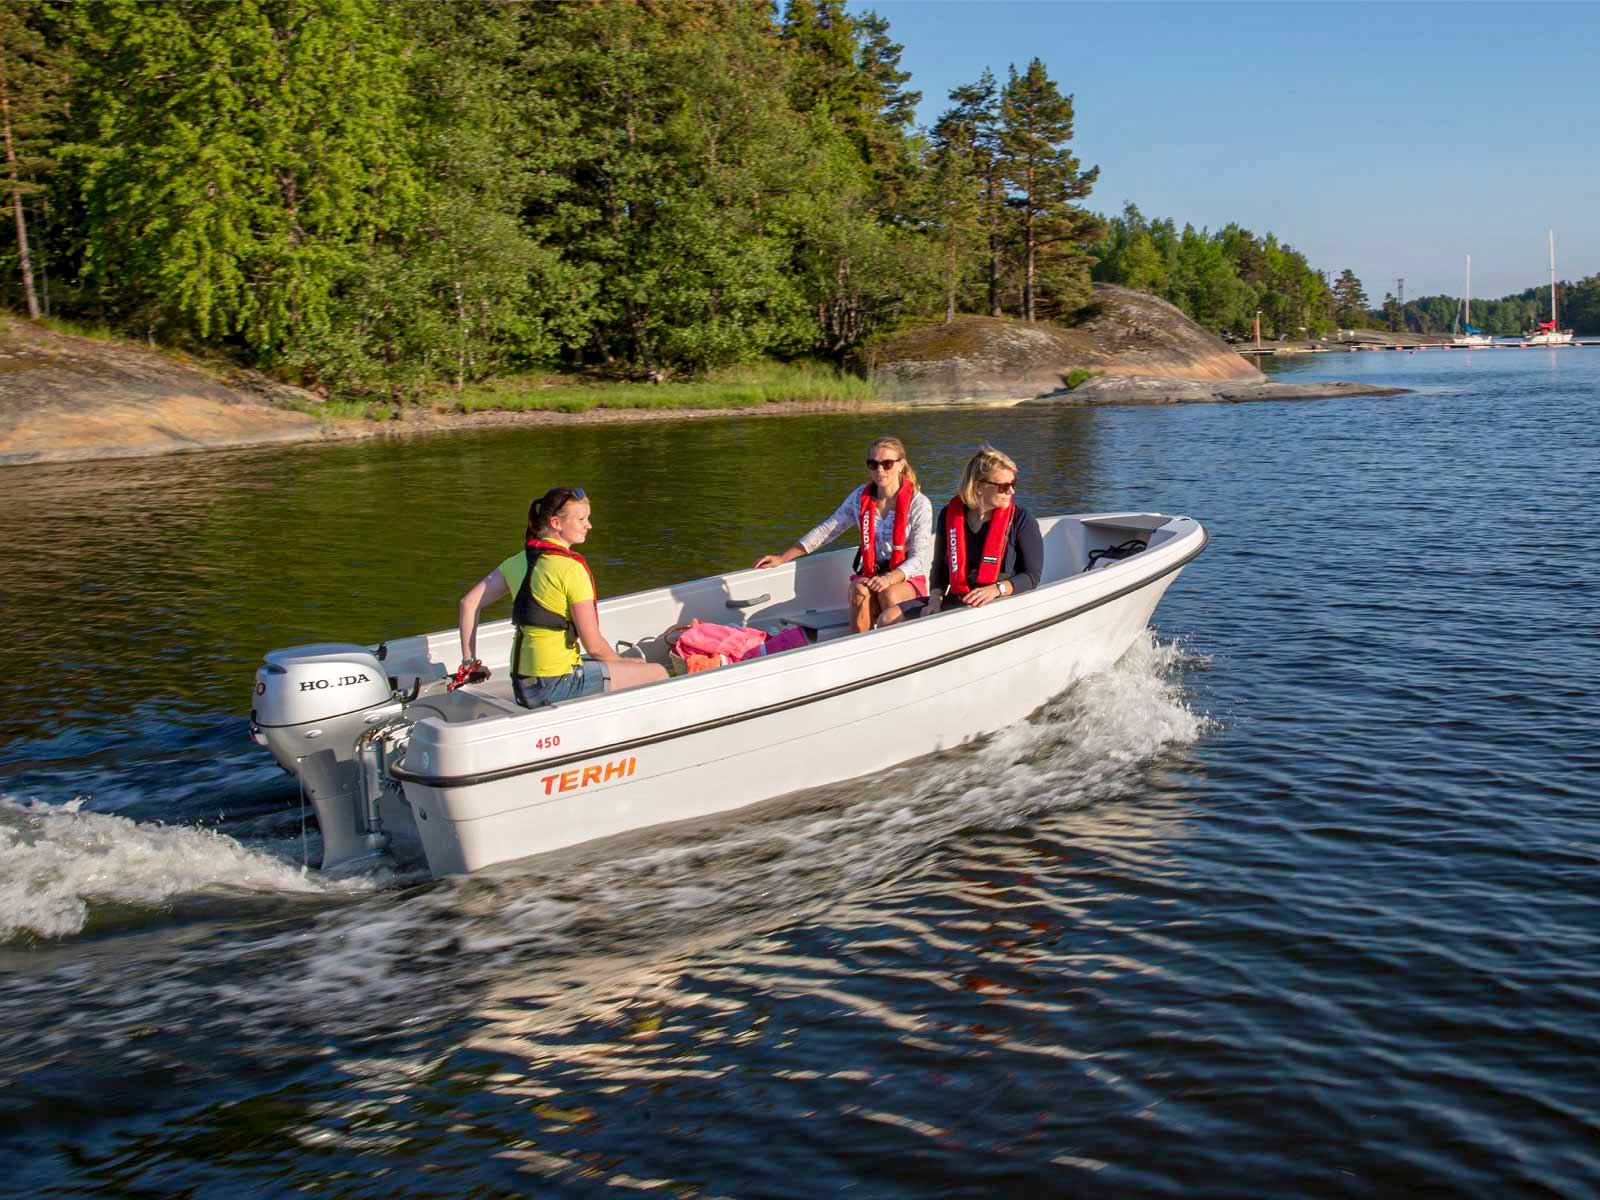 Terhi 450   Boat Solutions, Utting am Ammersee